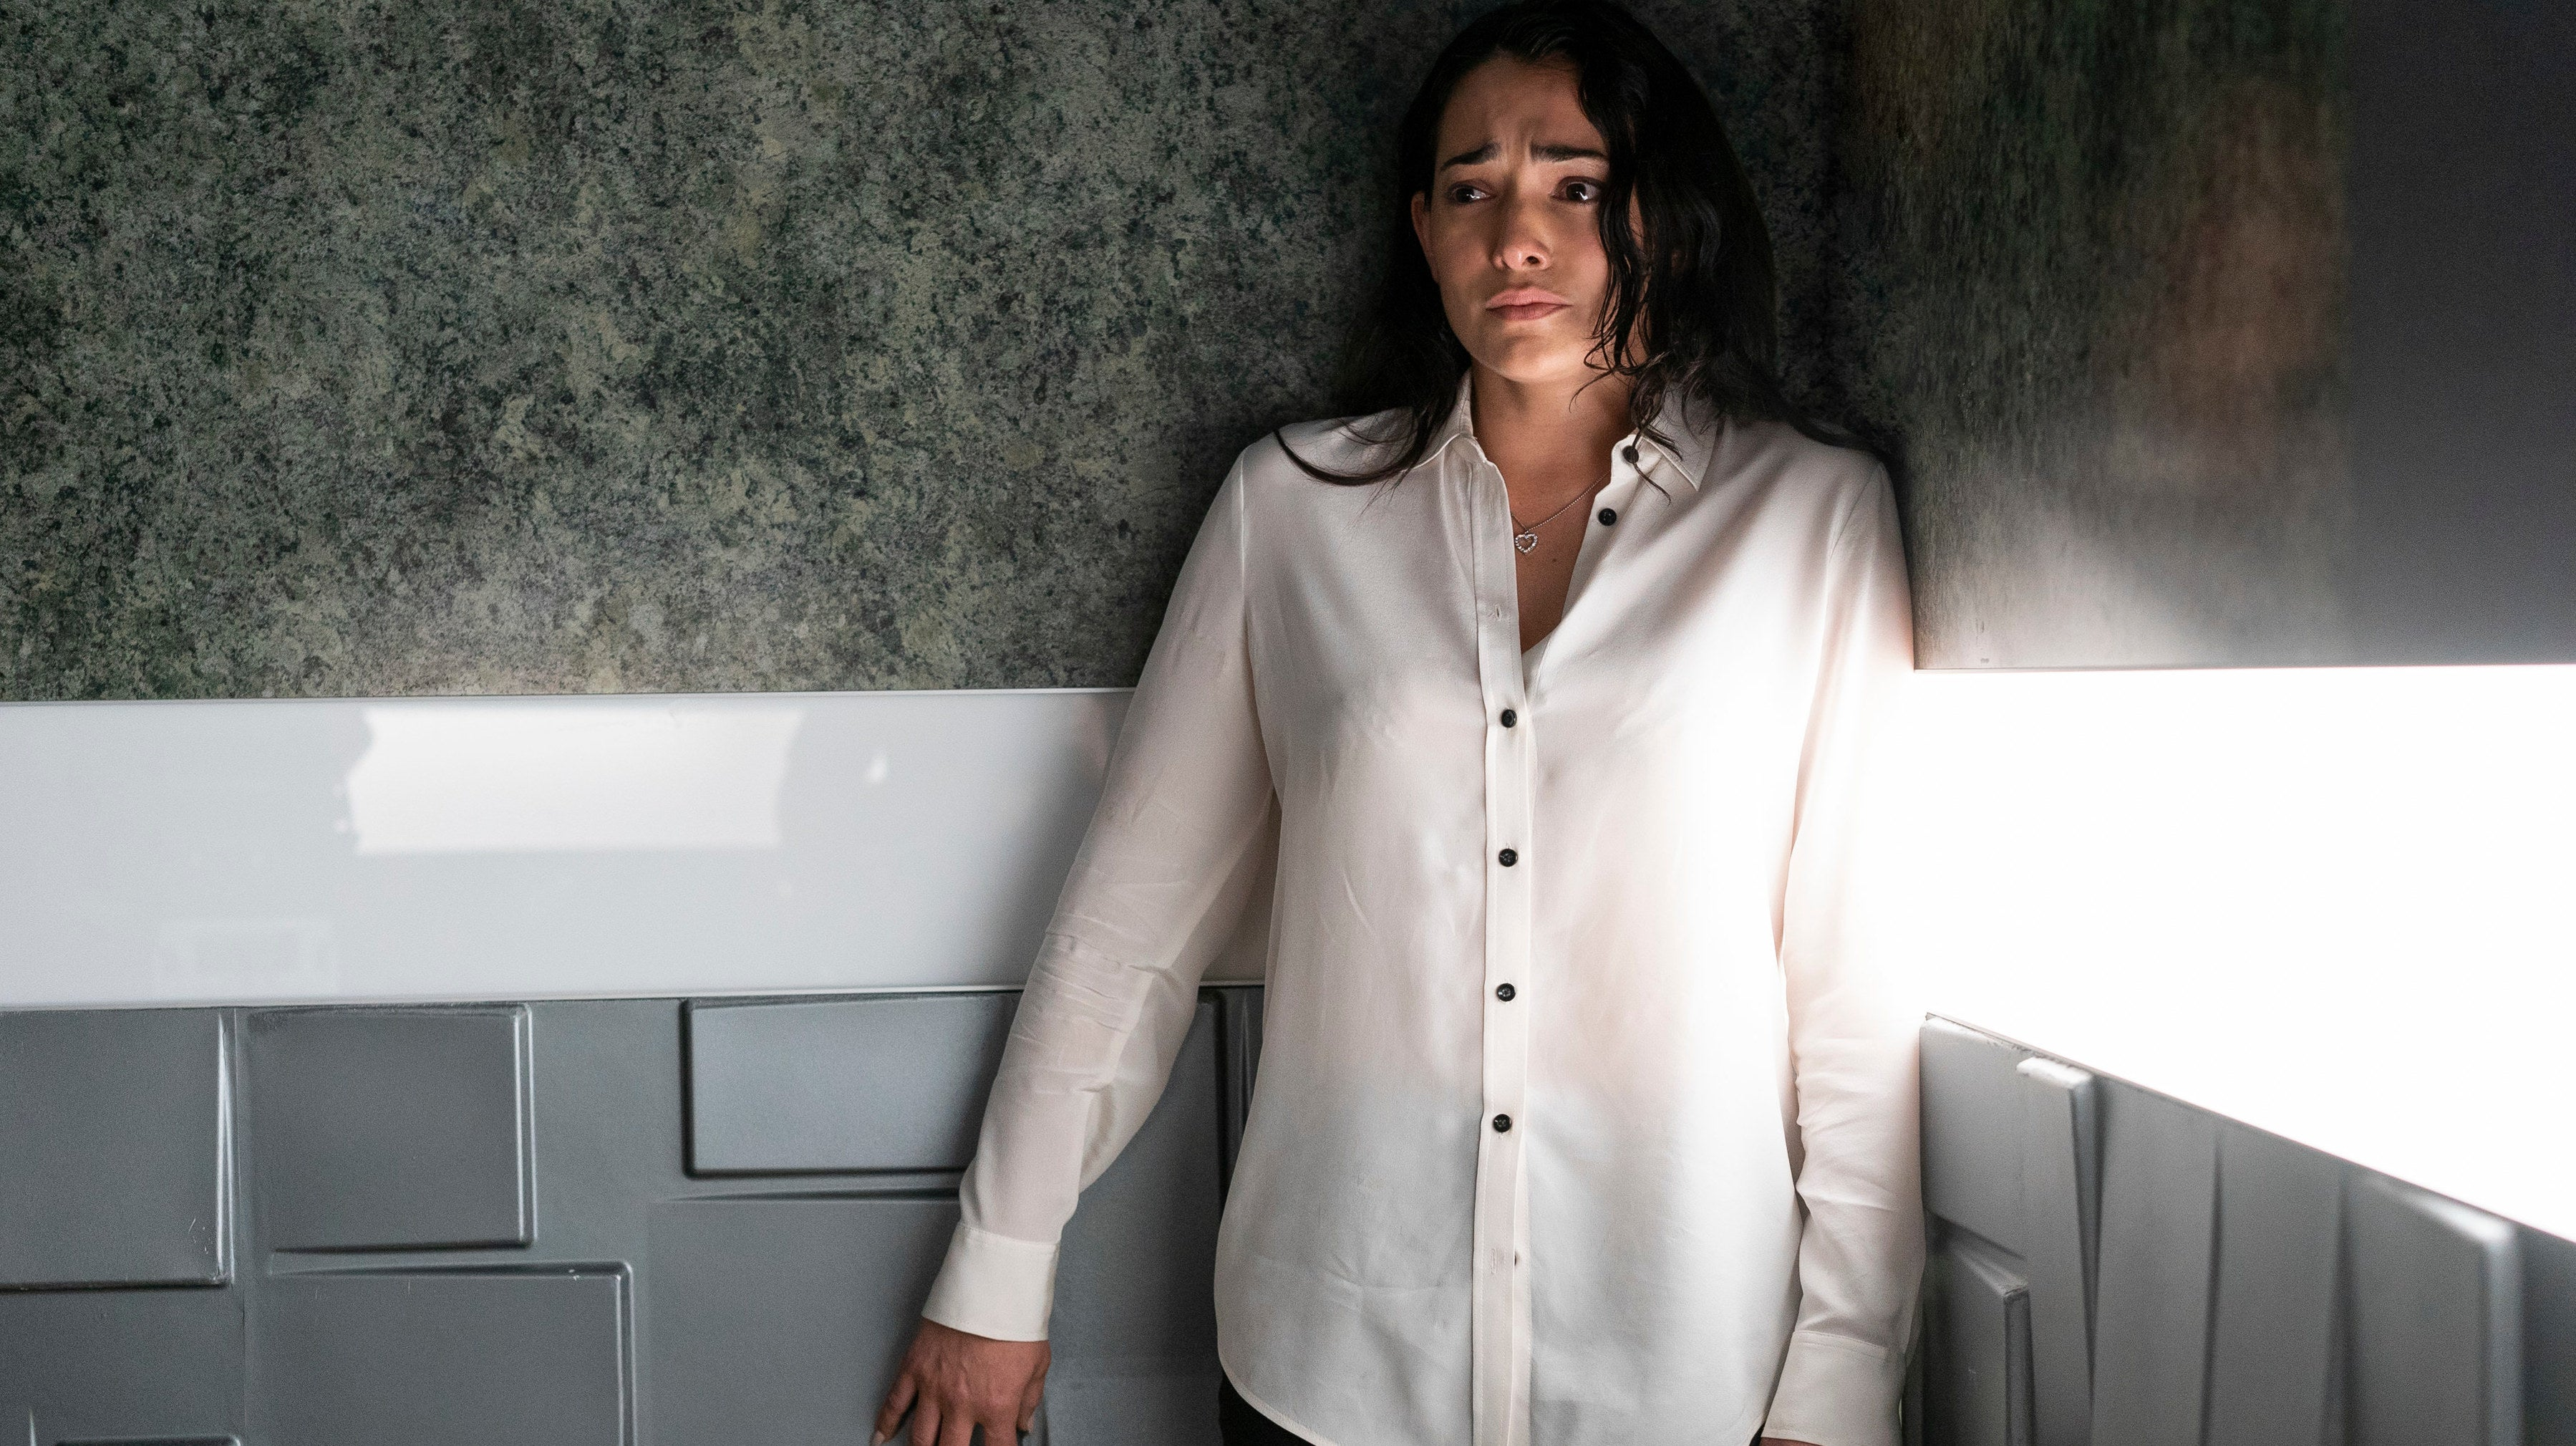 Hulu's Latest Into The Dark Trailer Is About An Elevator Ride From Hell